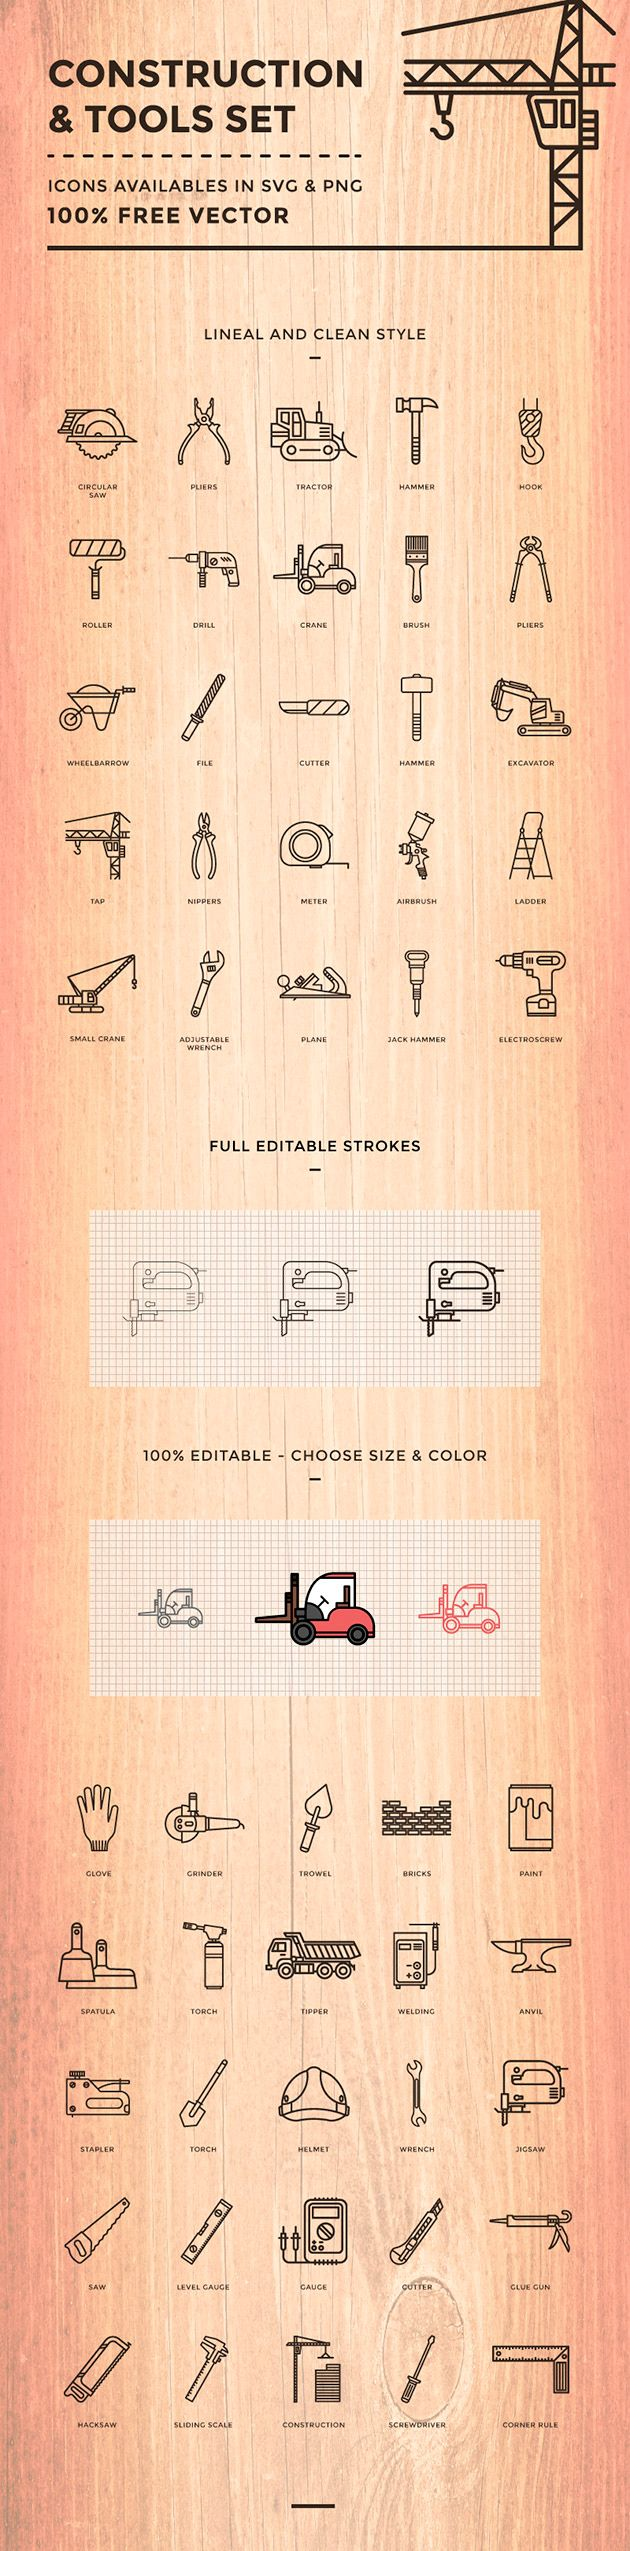 Construction & tools icons on Behance